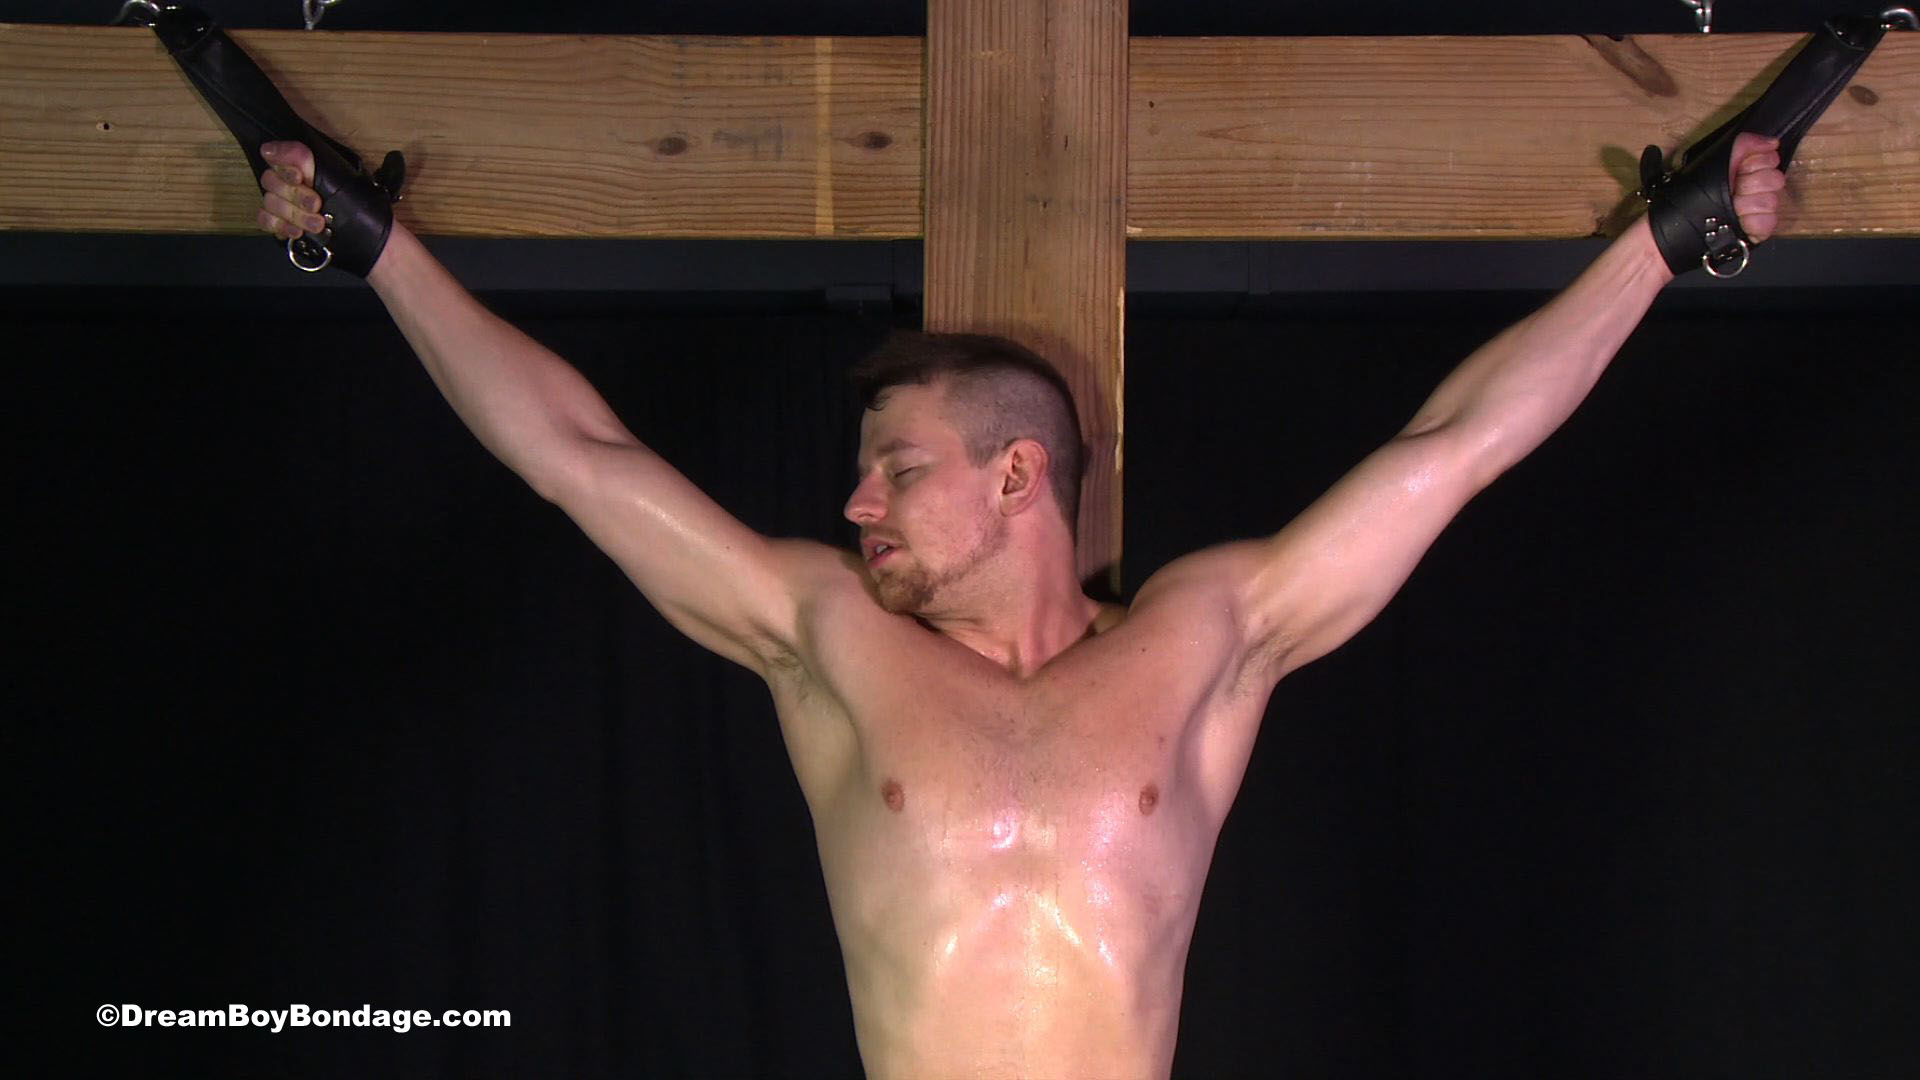 Male crucifixion bdsm